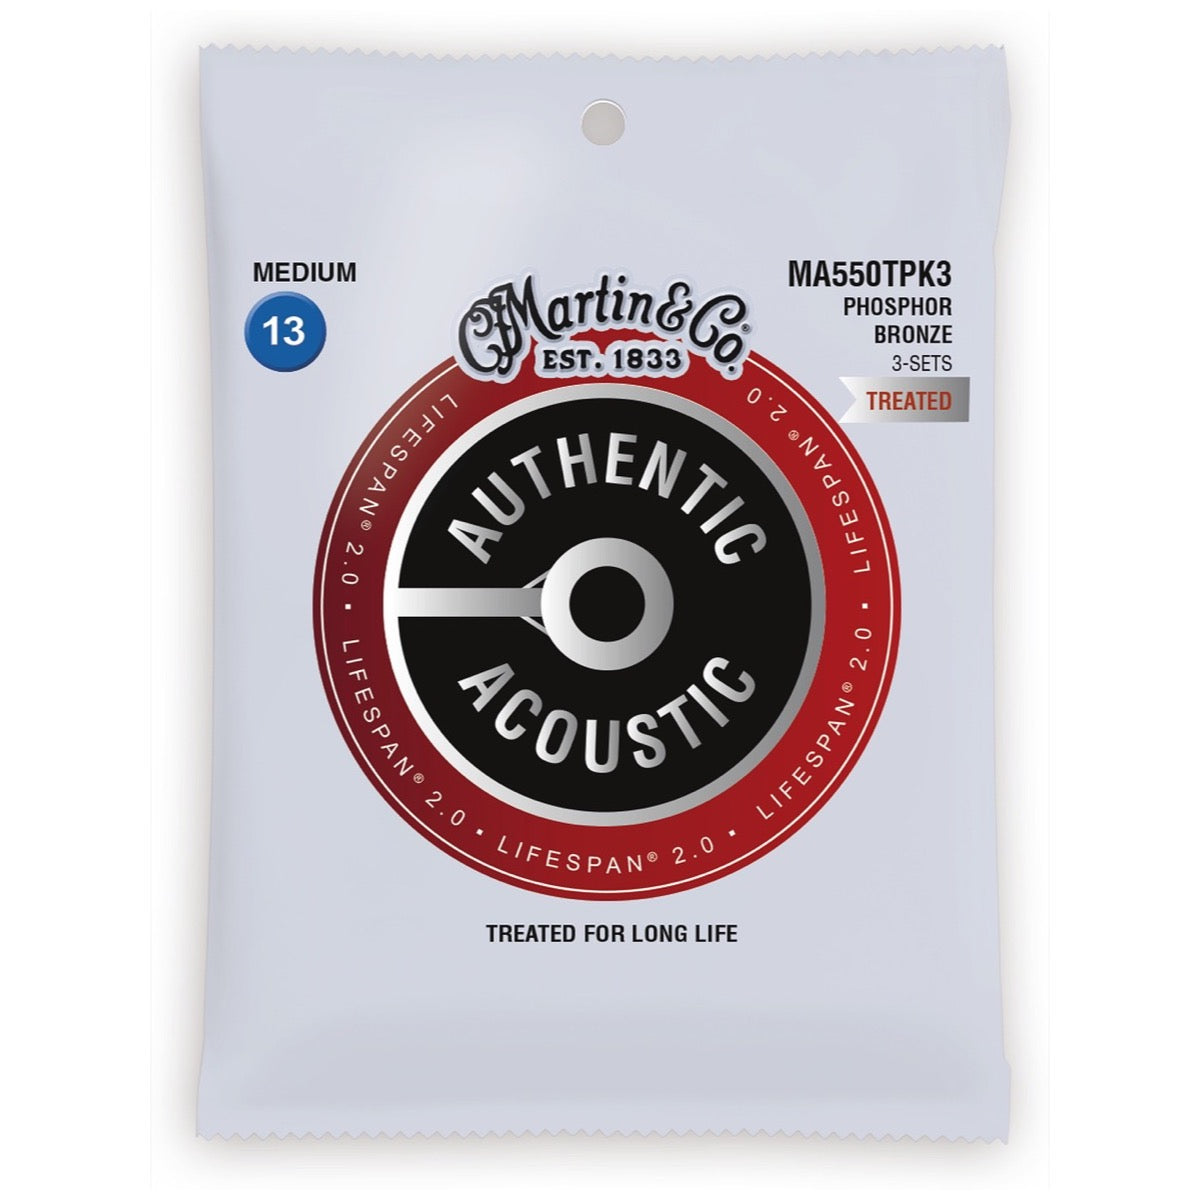 Martin Authentic Lifespan 2.0 Treated Phosphor Bronze Acoustic Guitar Strings, MA550T, 3-Pack, Medium